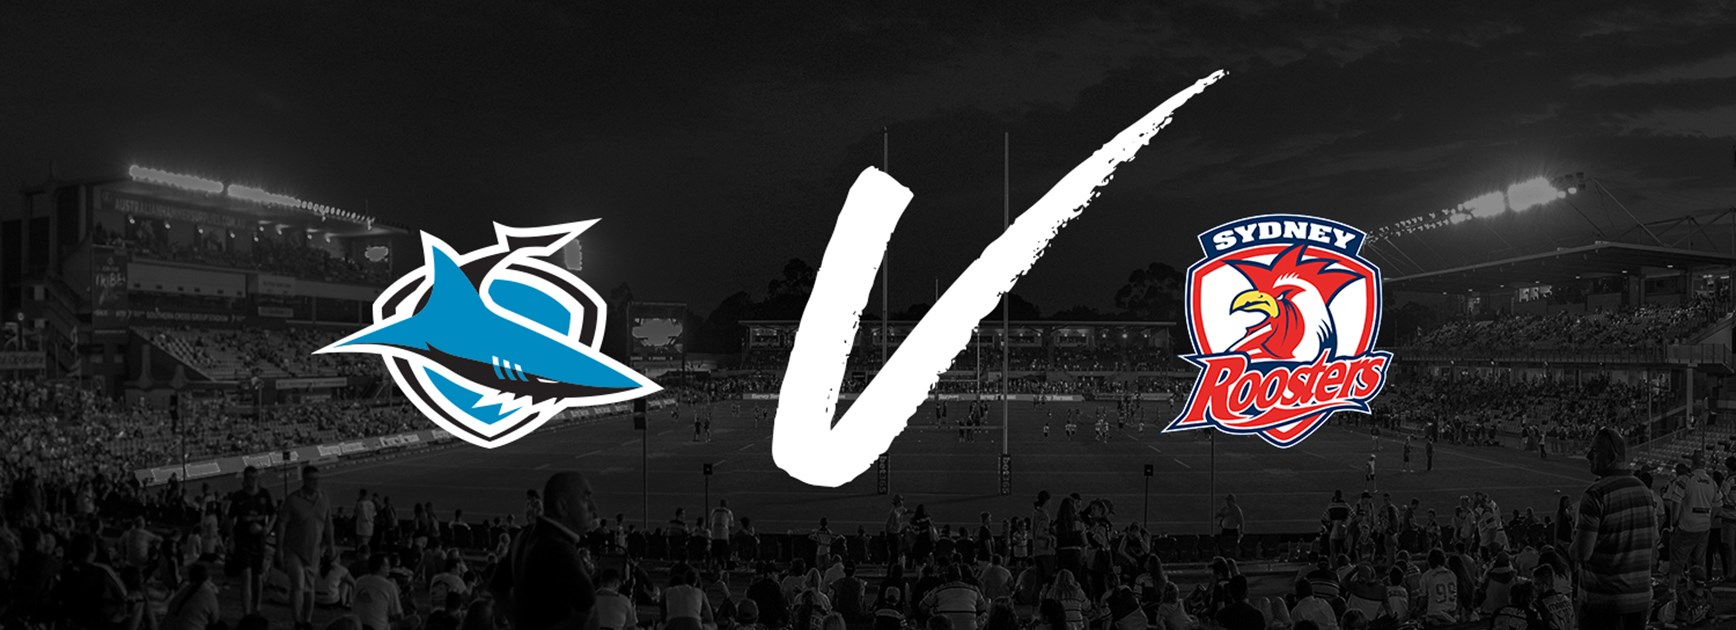 Match Preview - Sharks v Roosters